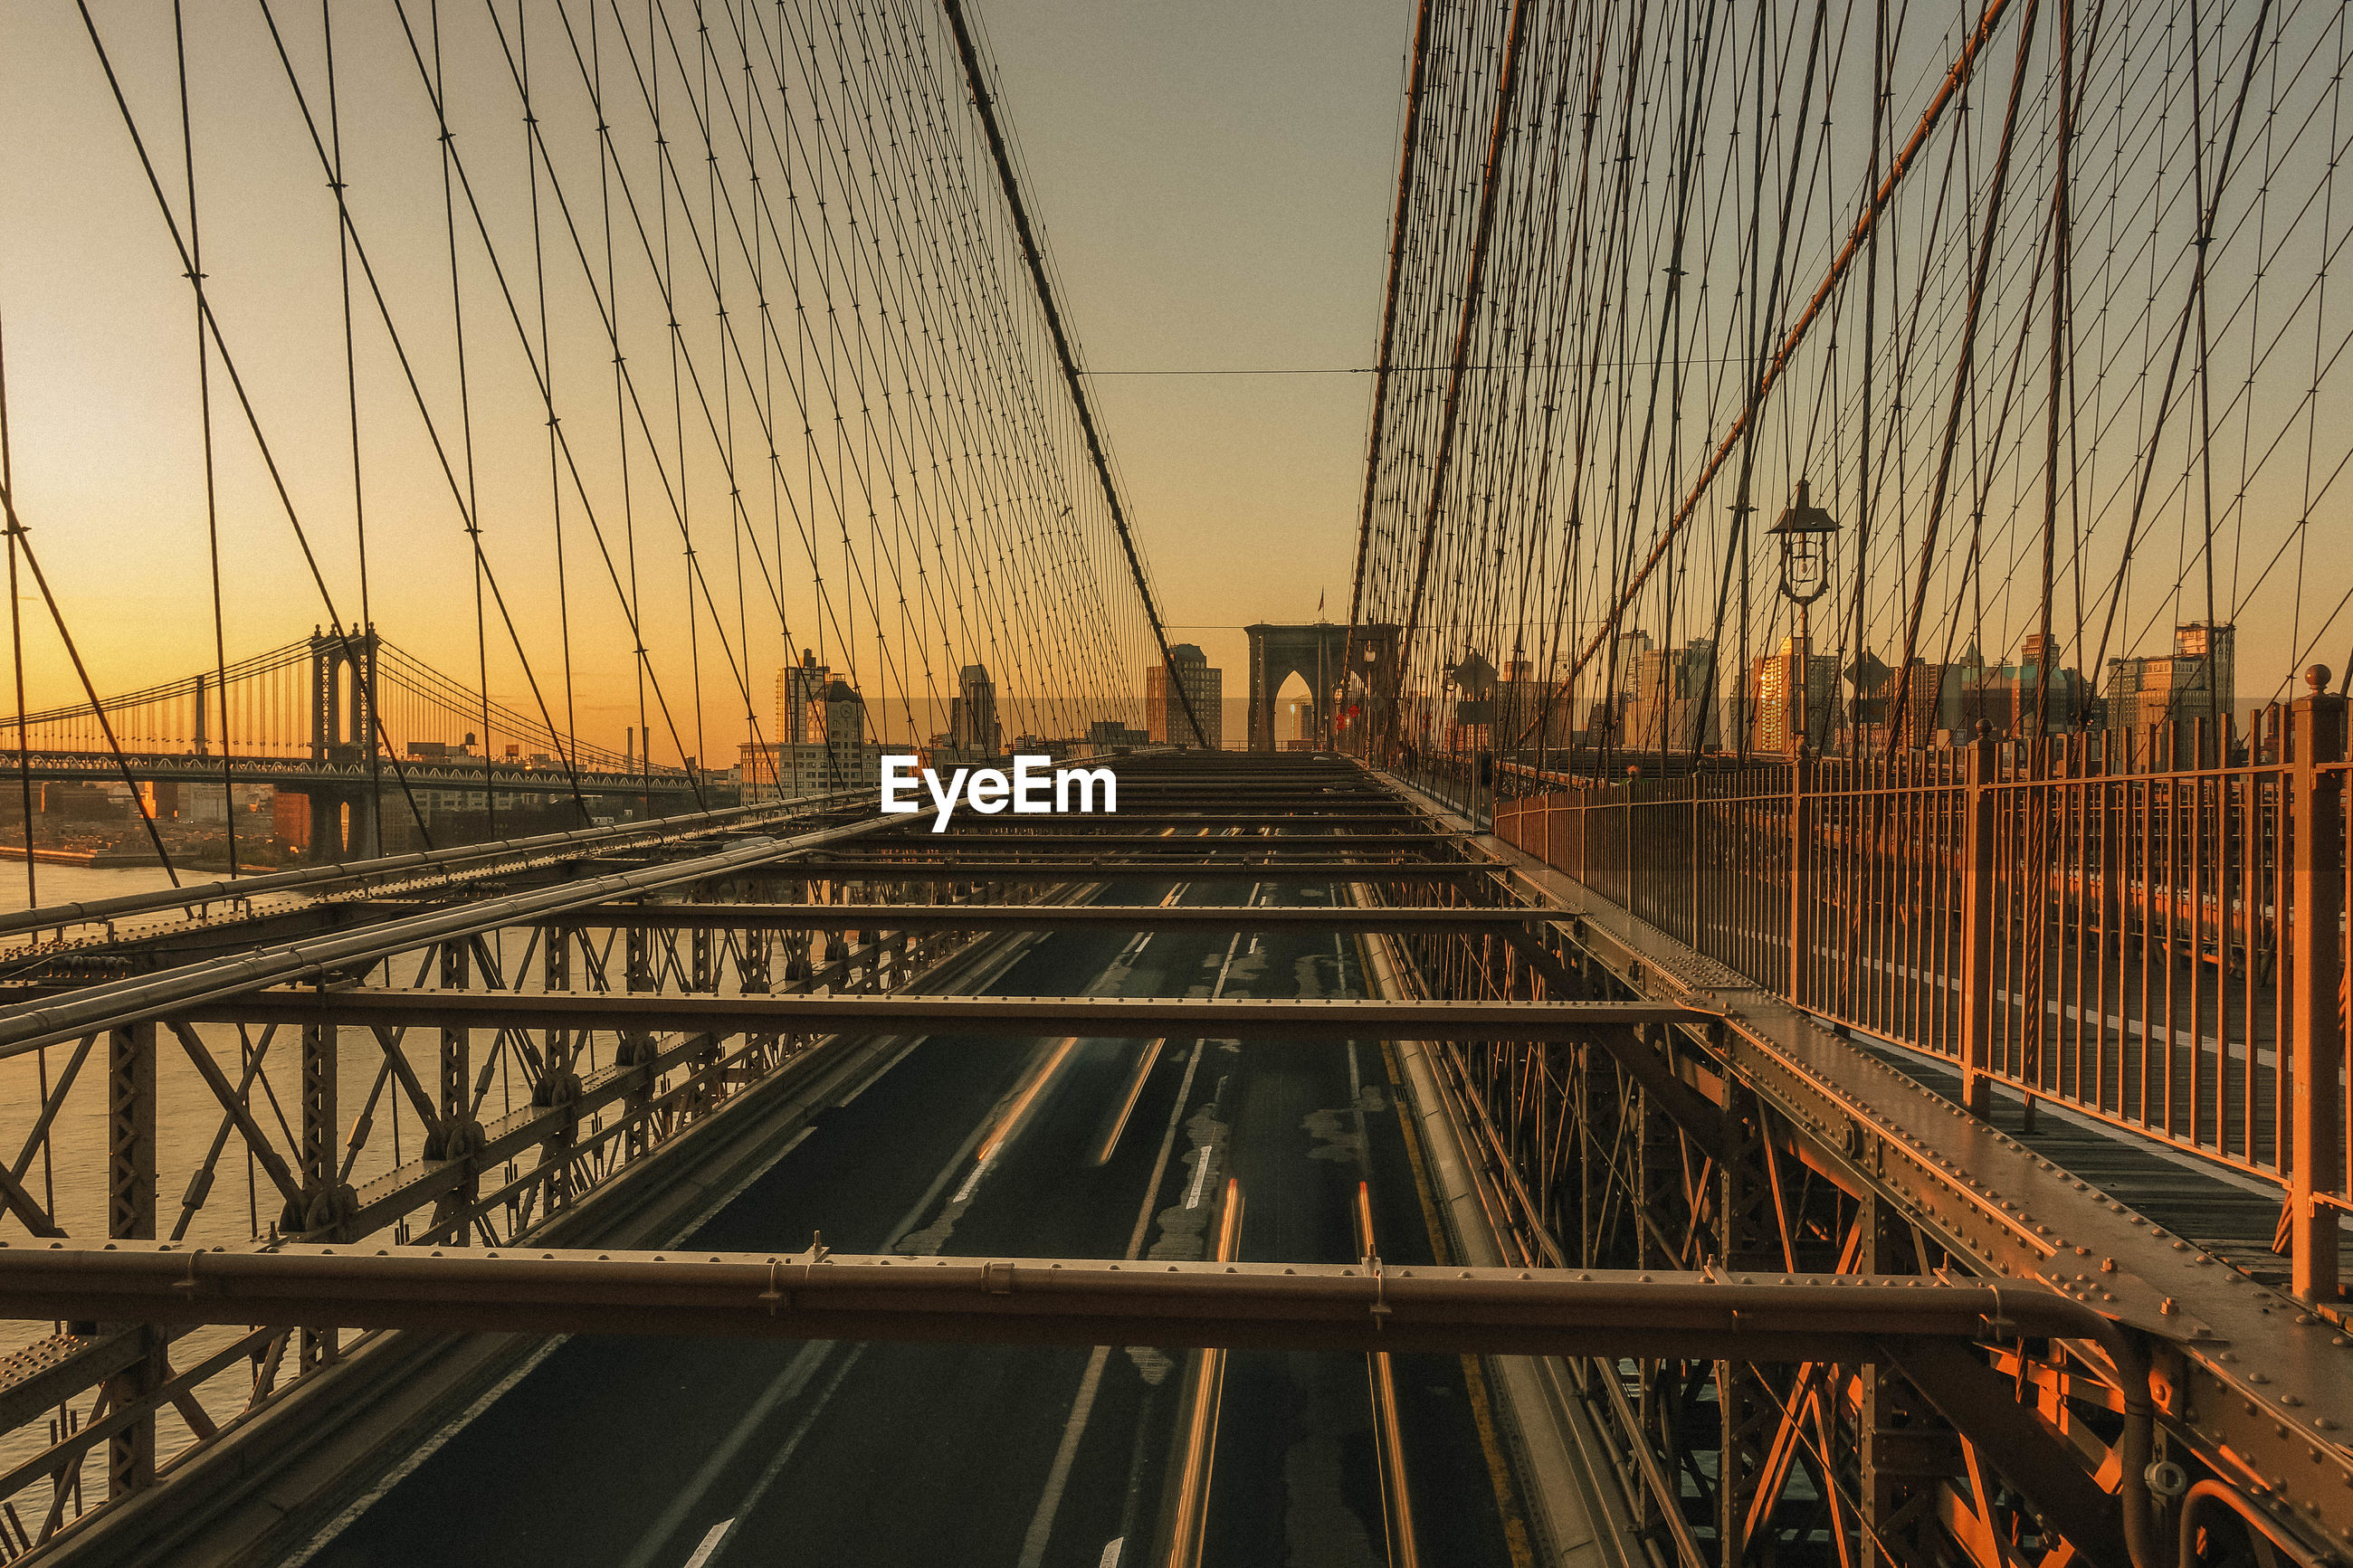 Suspension bridge against sky during sunset